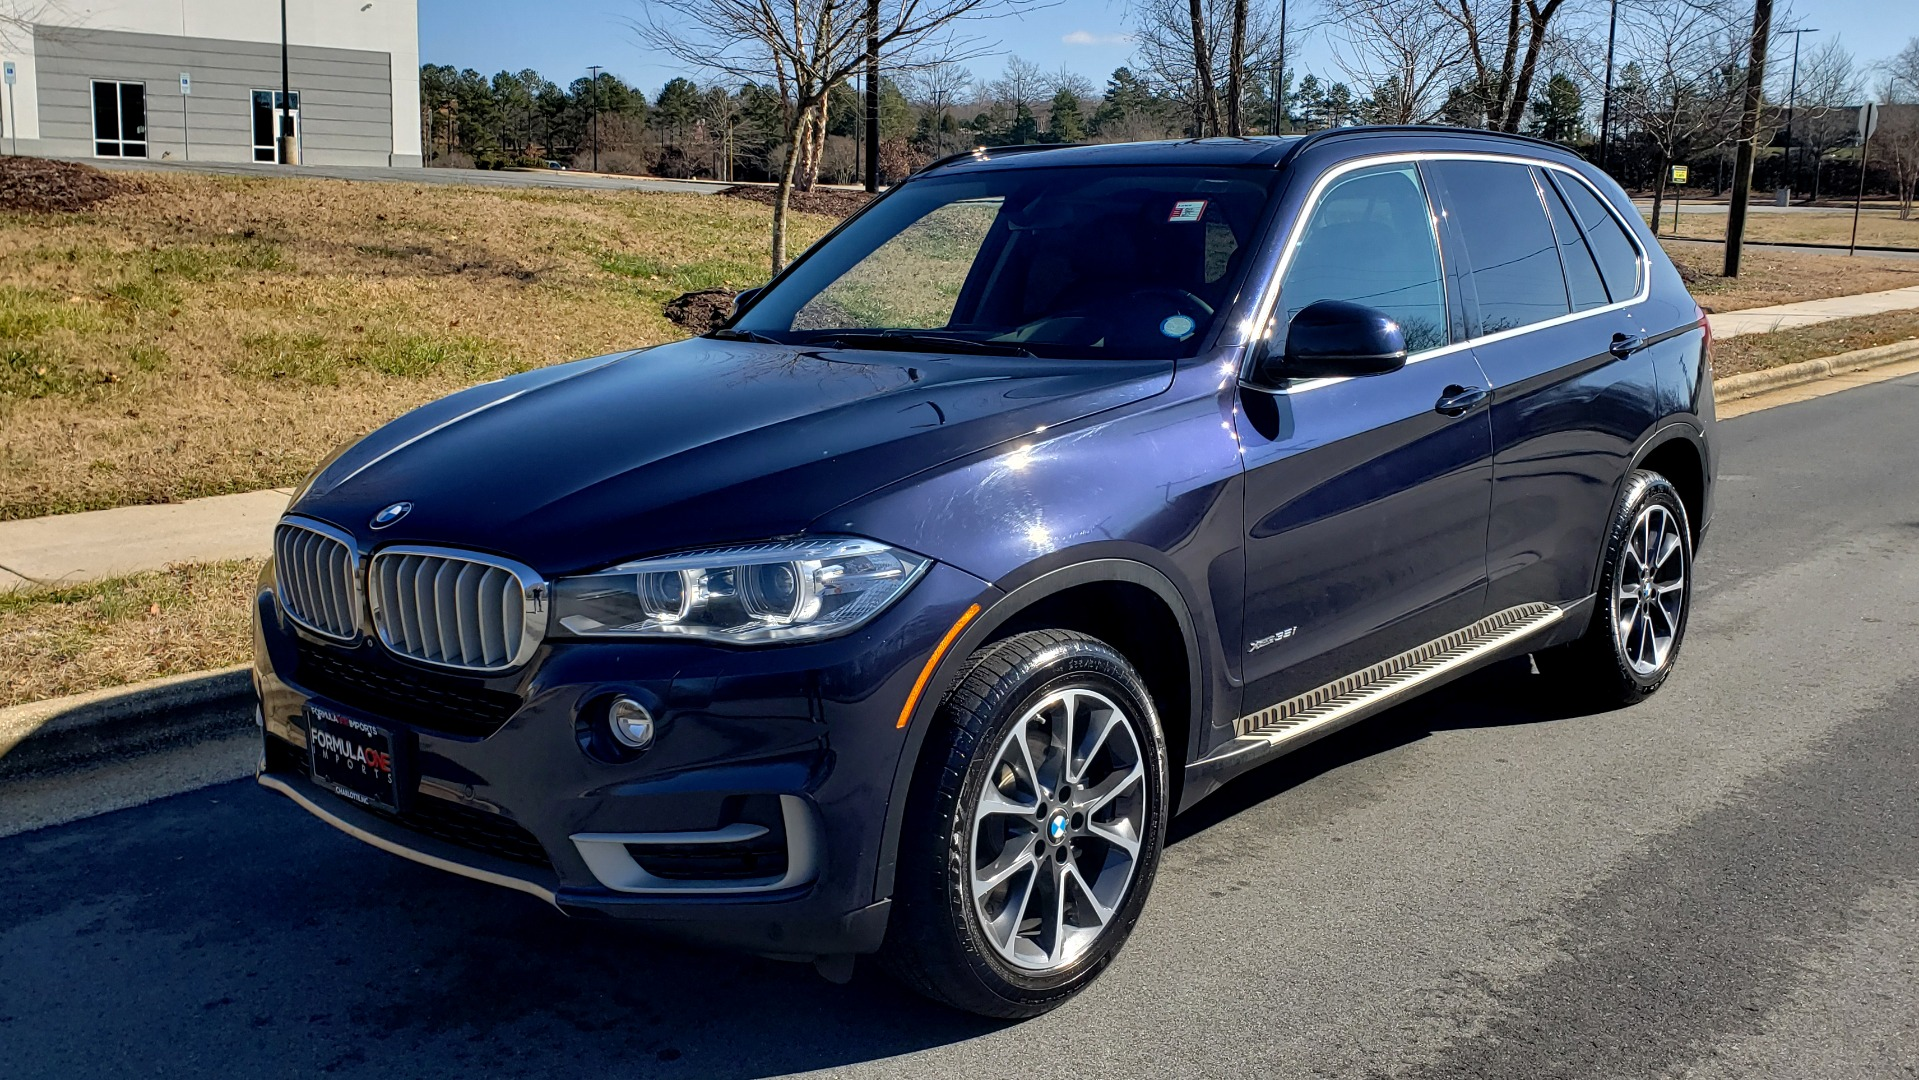 Used 2015 BMW X5 XDRIVE35I PREMIUM / NAV / XLINE / CLD WTHR / DRVR ASST / REARVIEW for sale Sold at Formula Imports in Charlotte NC 28227 1